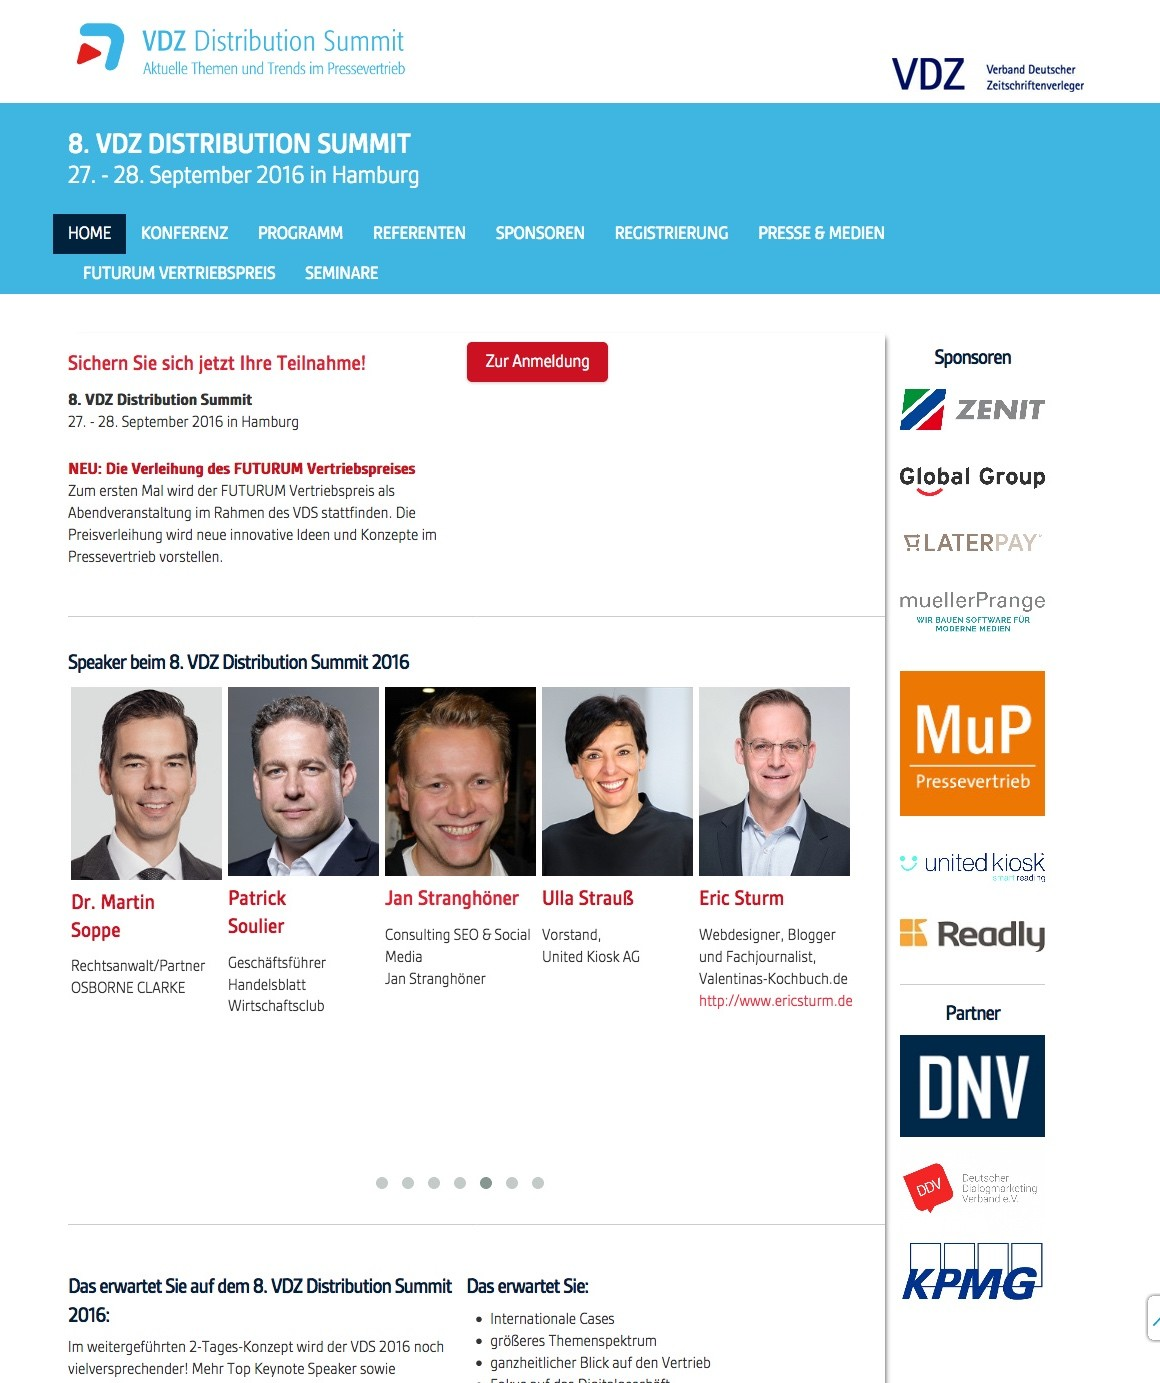 VDZ Distribution Summit (Screenshot der Startseite, September 2016)